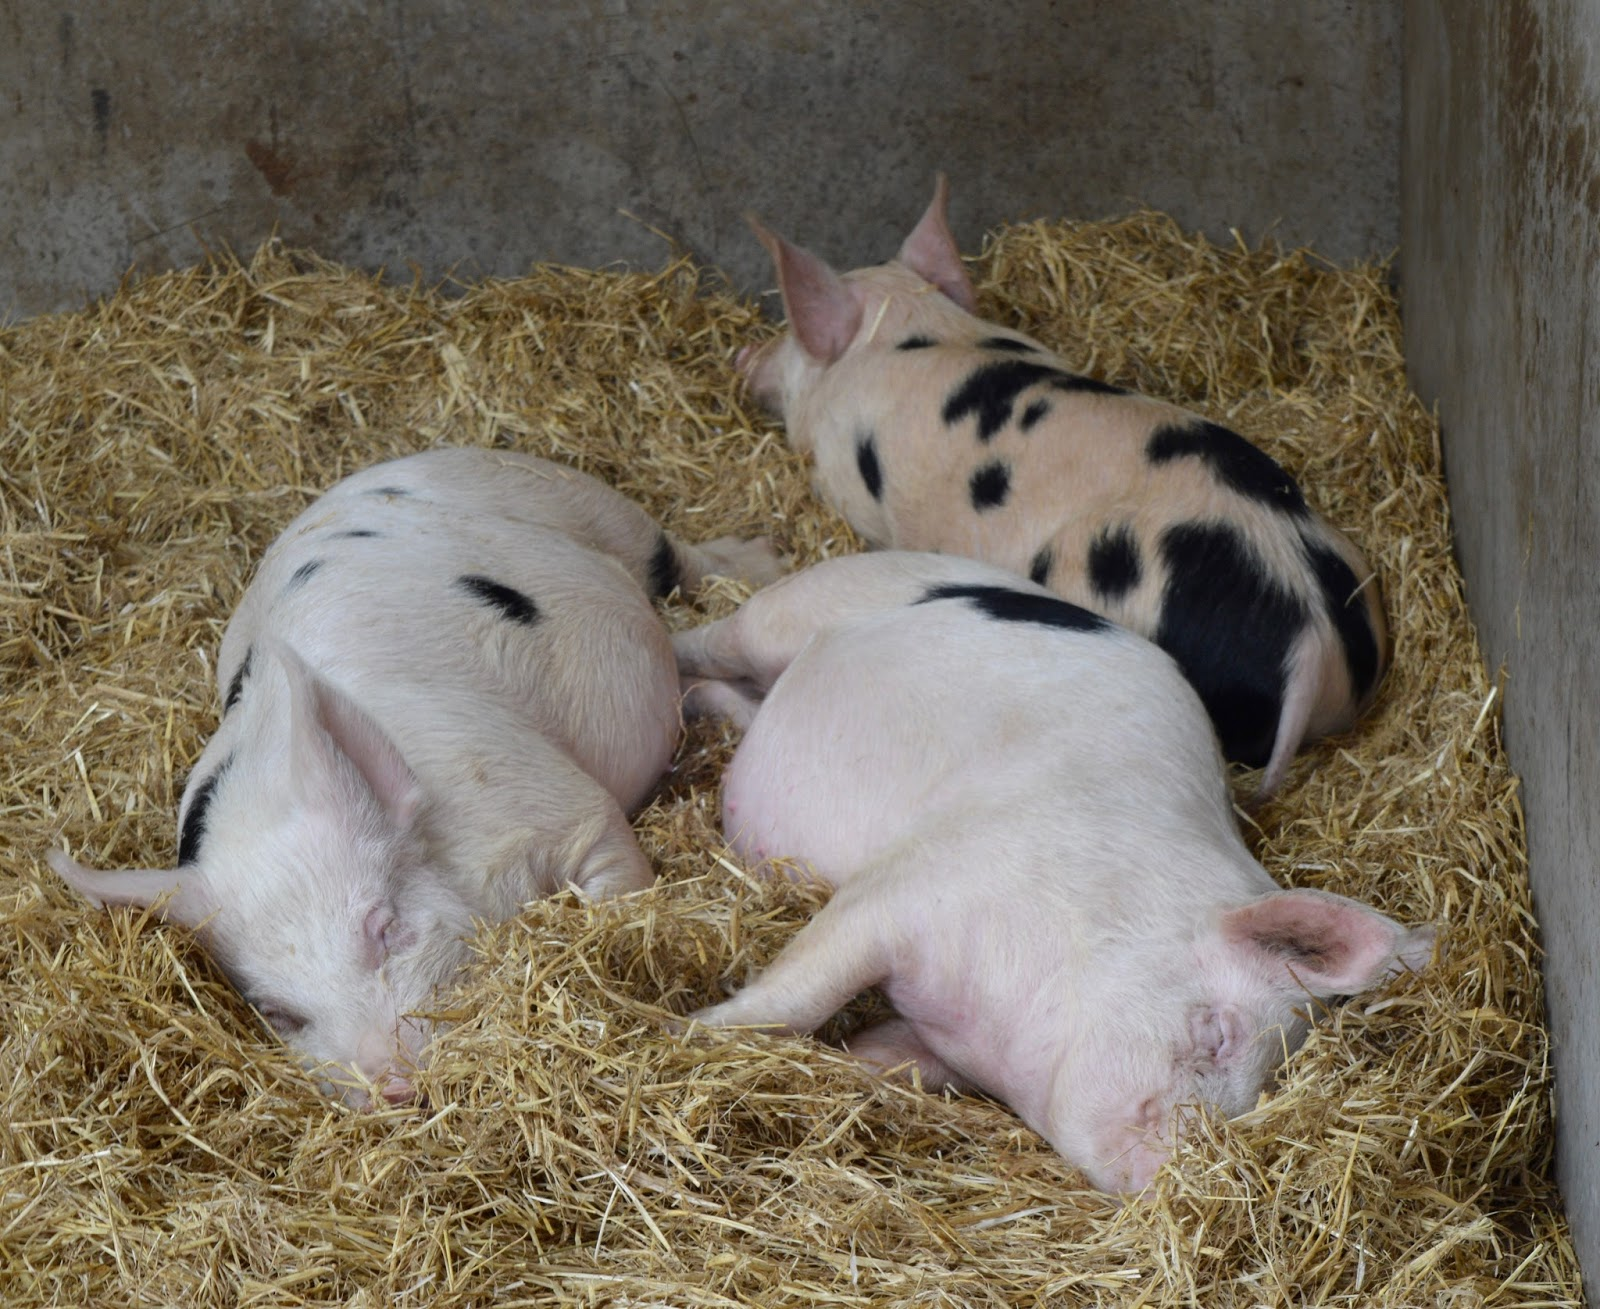 Ouseburn Farm Newcastle | A FREE Place to Take the Kids - pigs in the farm yard